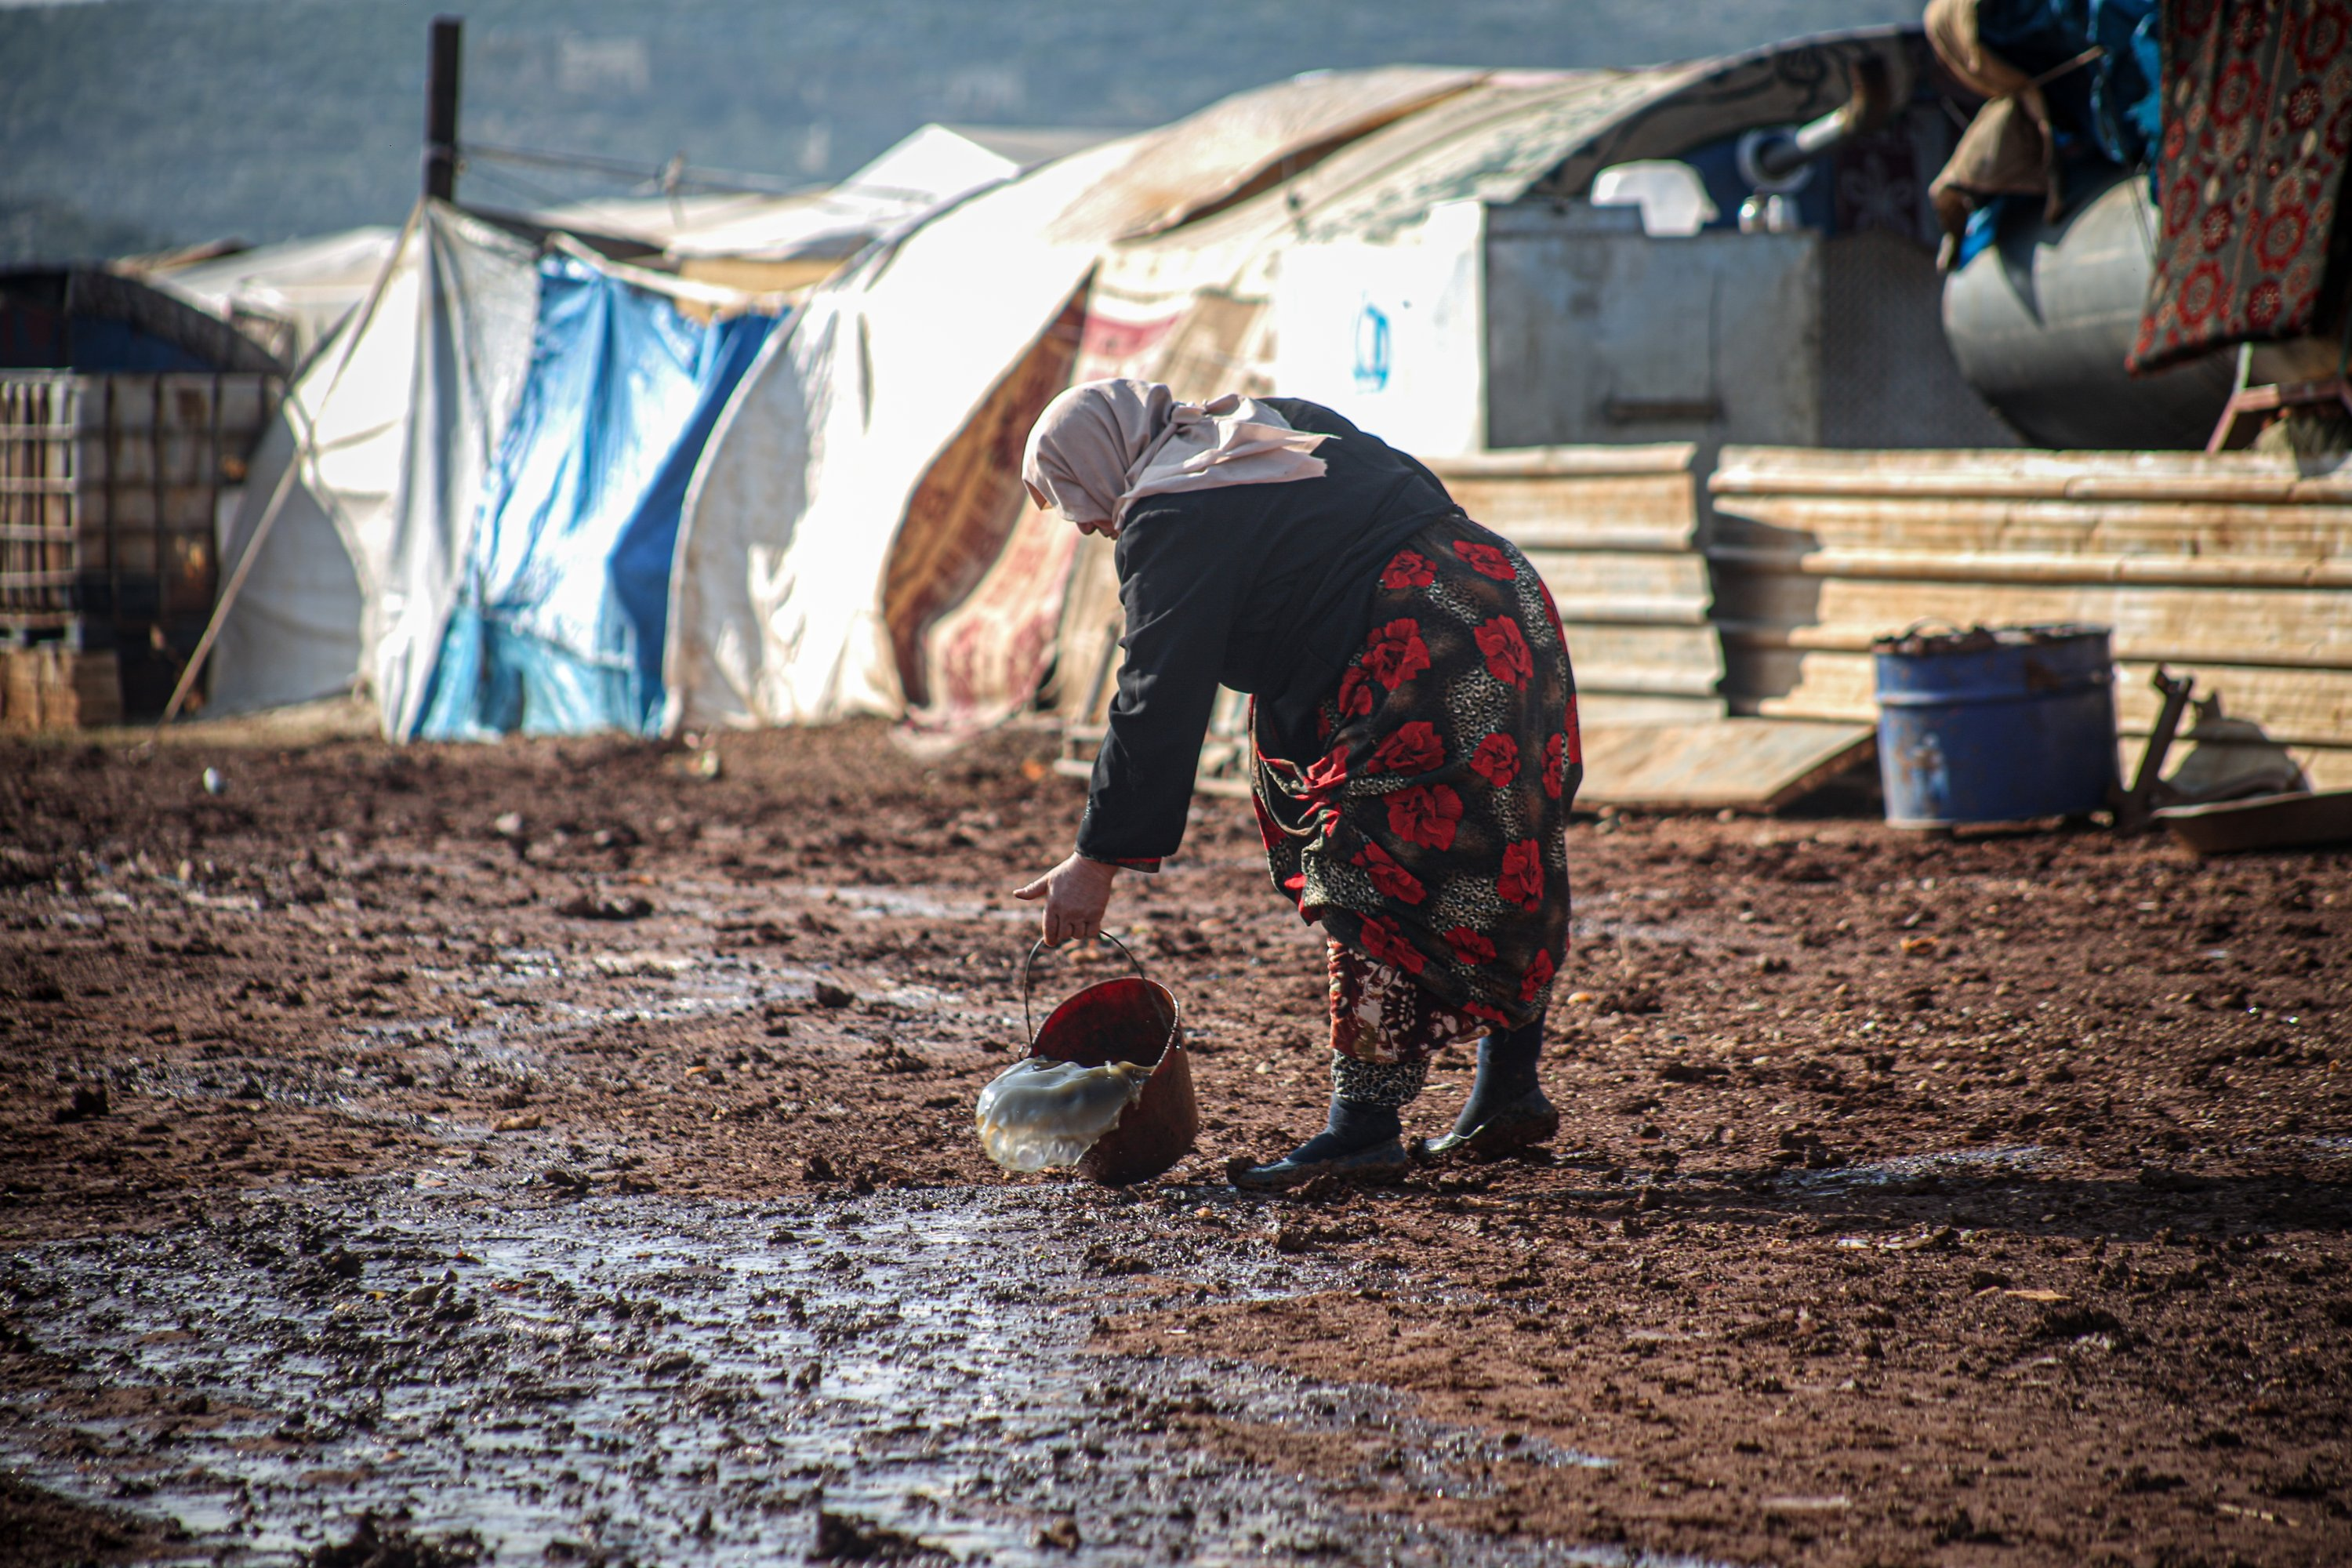 A woman tries to clear her tent of water as heavy rain floods Keferarouk refugee camp in northwestern Idlib, Syria, Dec.19, 2020. (AA)